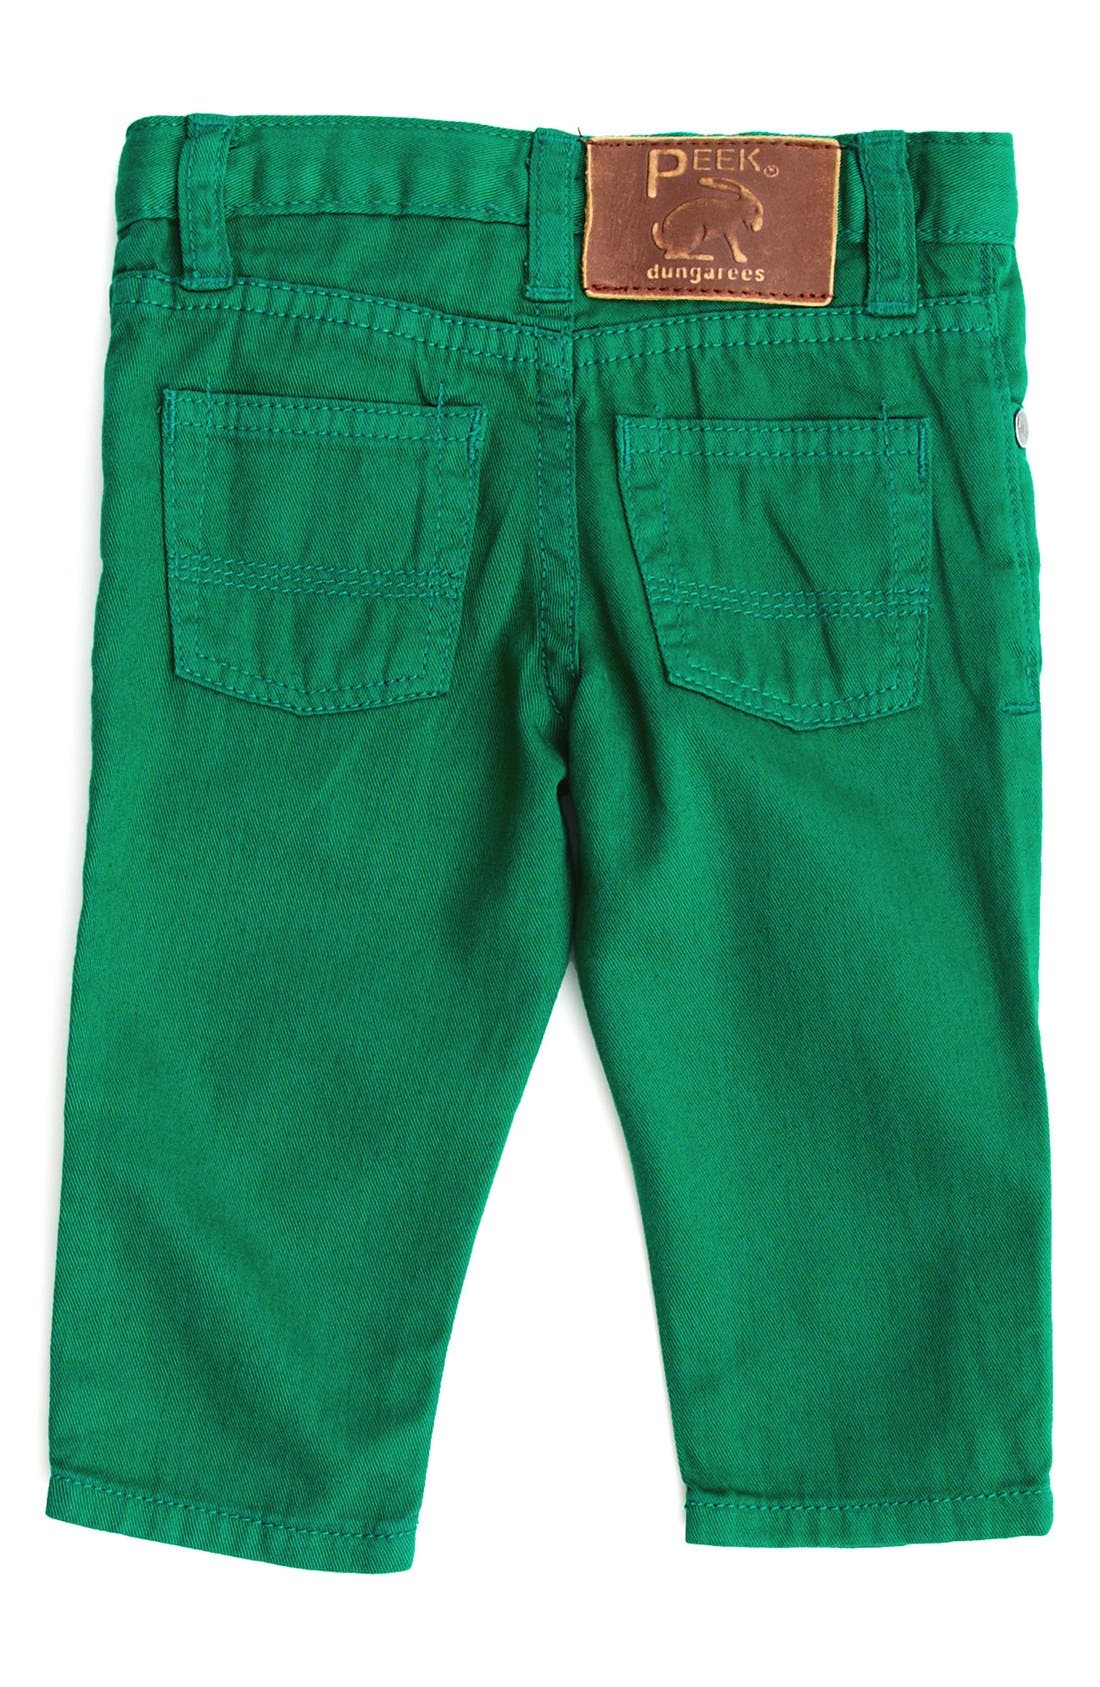 Alternate Image 2  - Peek Slouch Twill Jeans (Baby Boys)